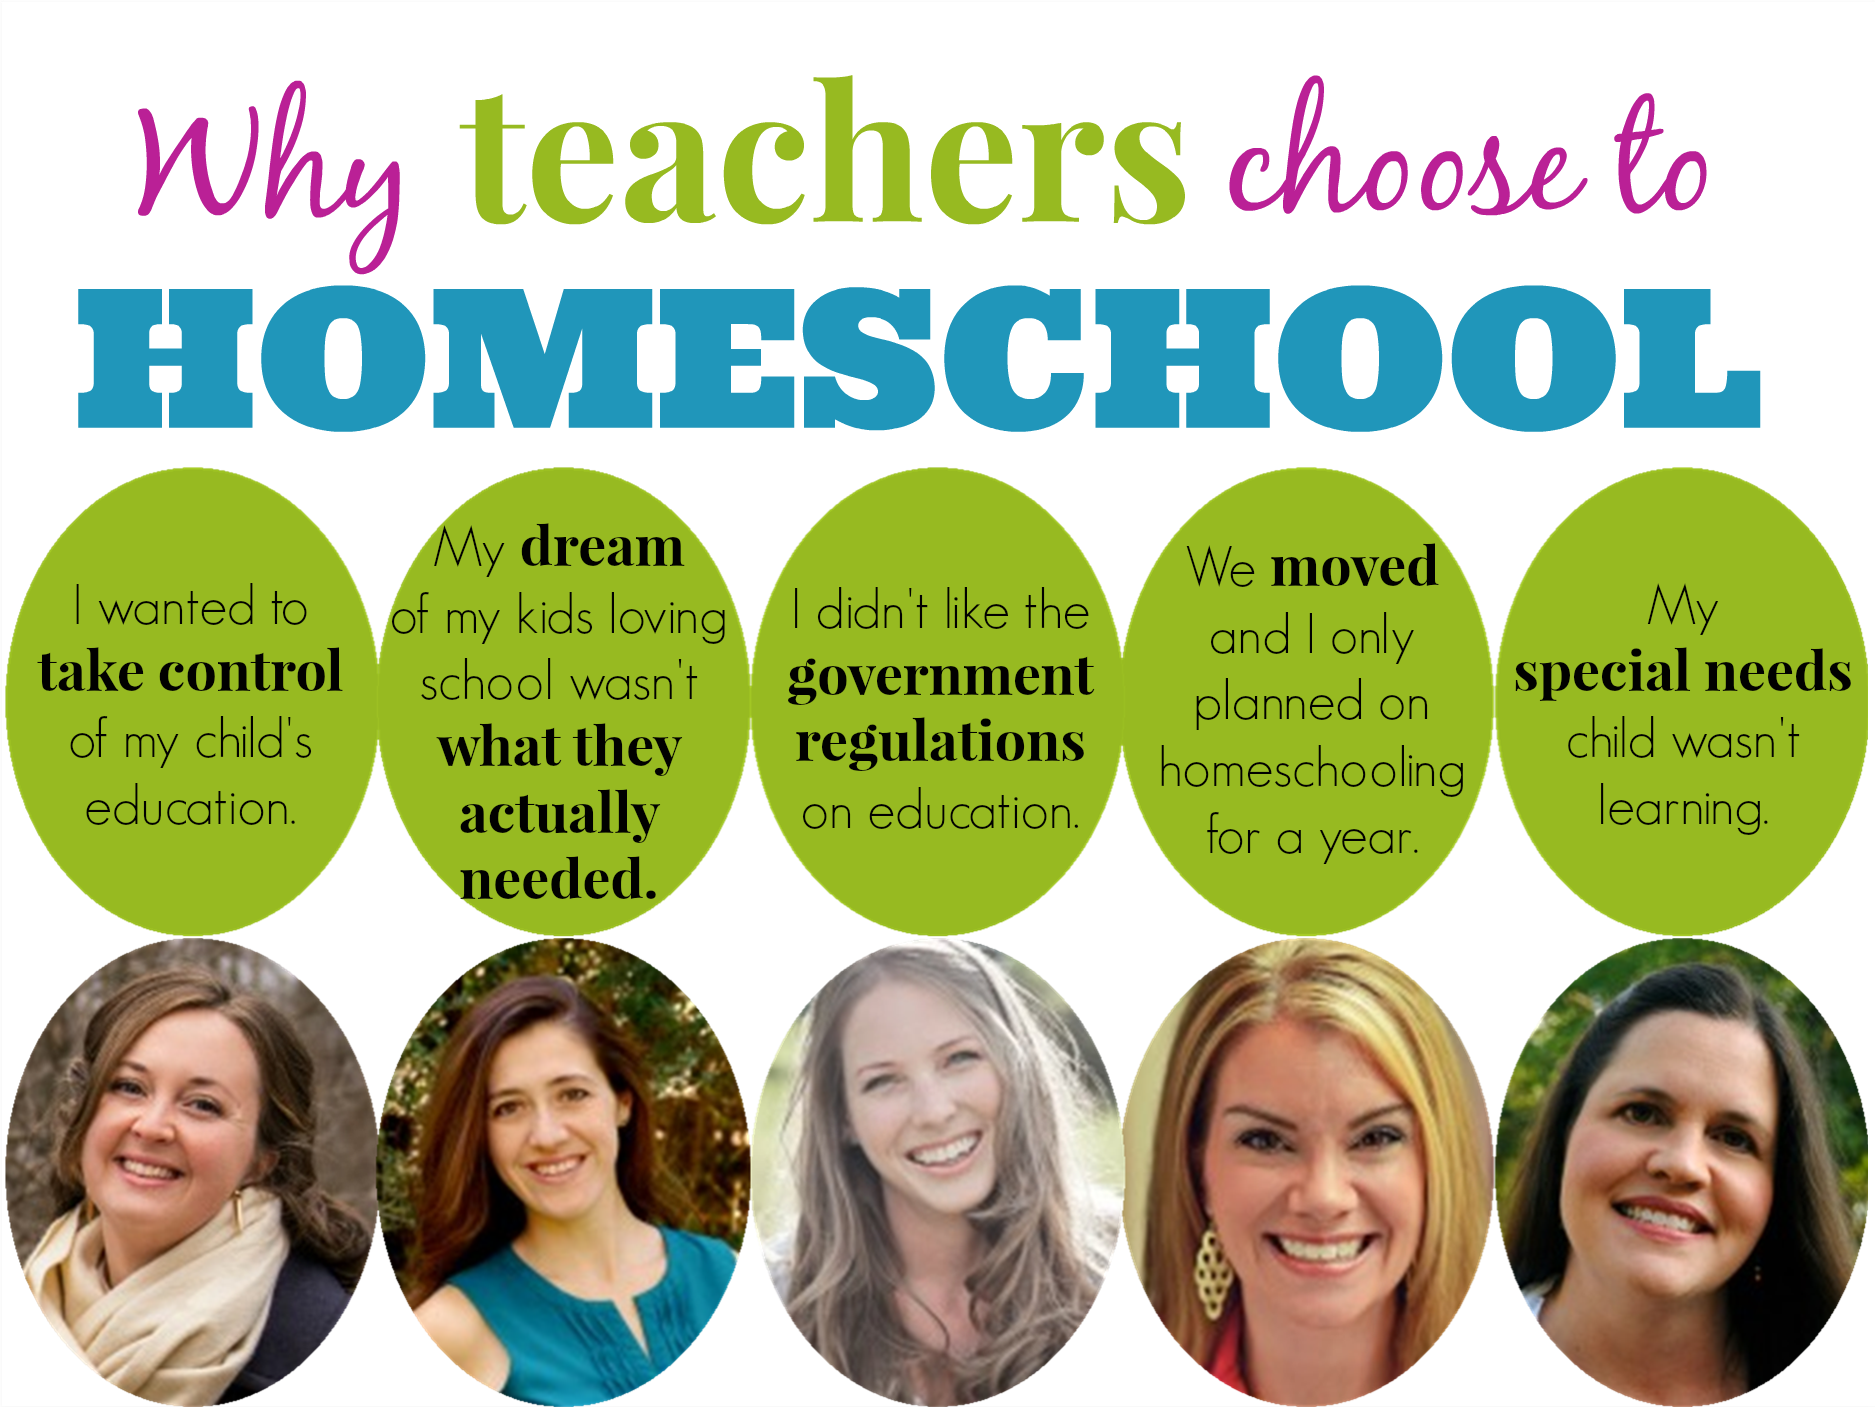 why teachers choose to homeschool series at hip homeschool moms  why teachers homeschool button